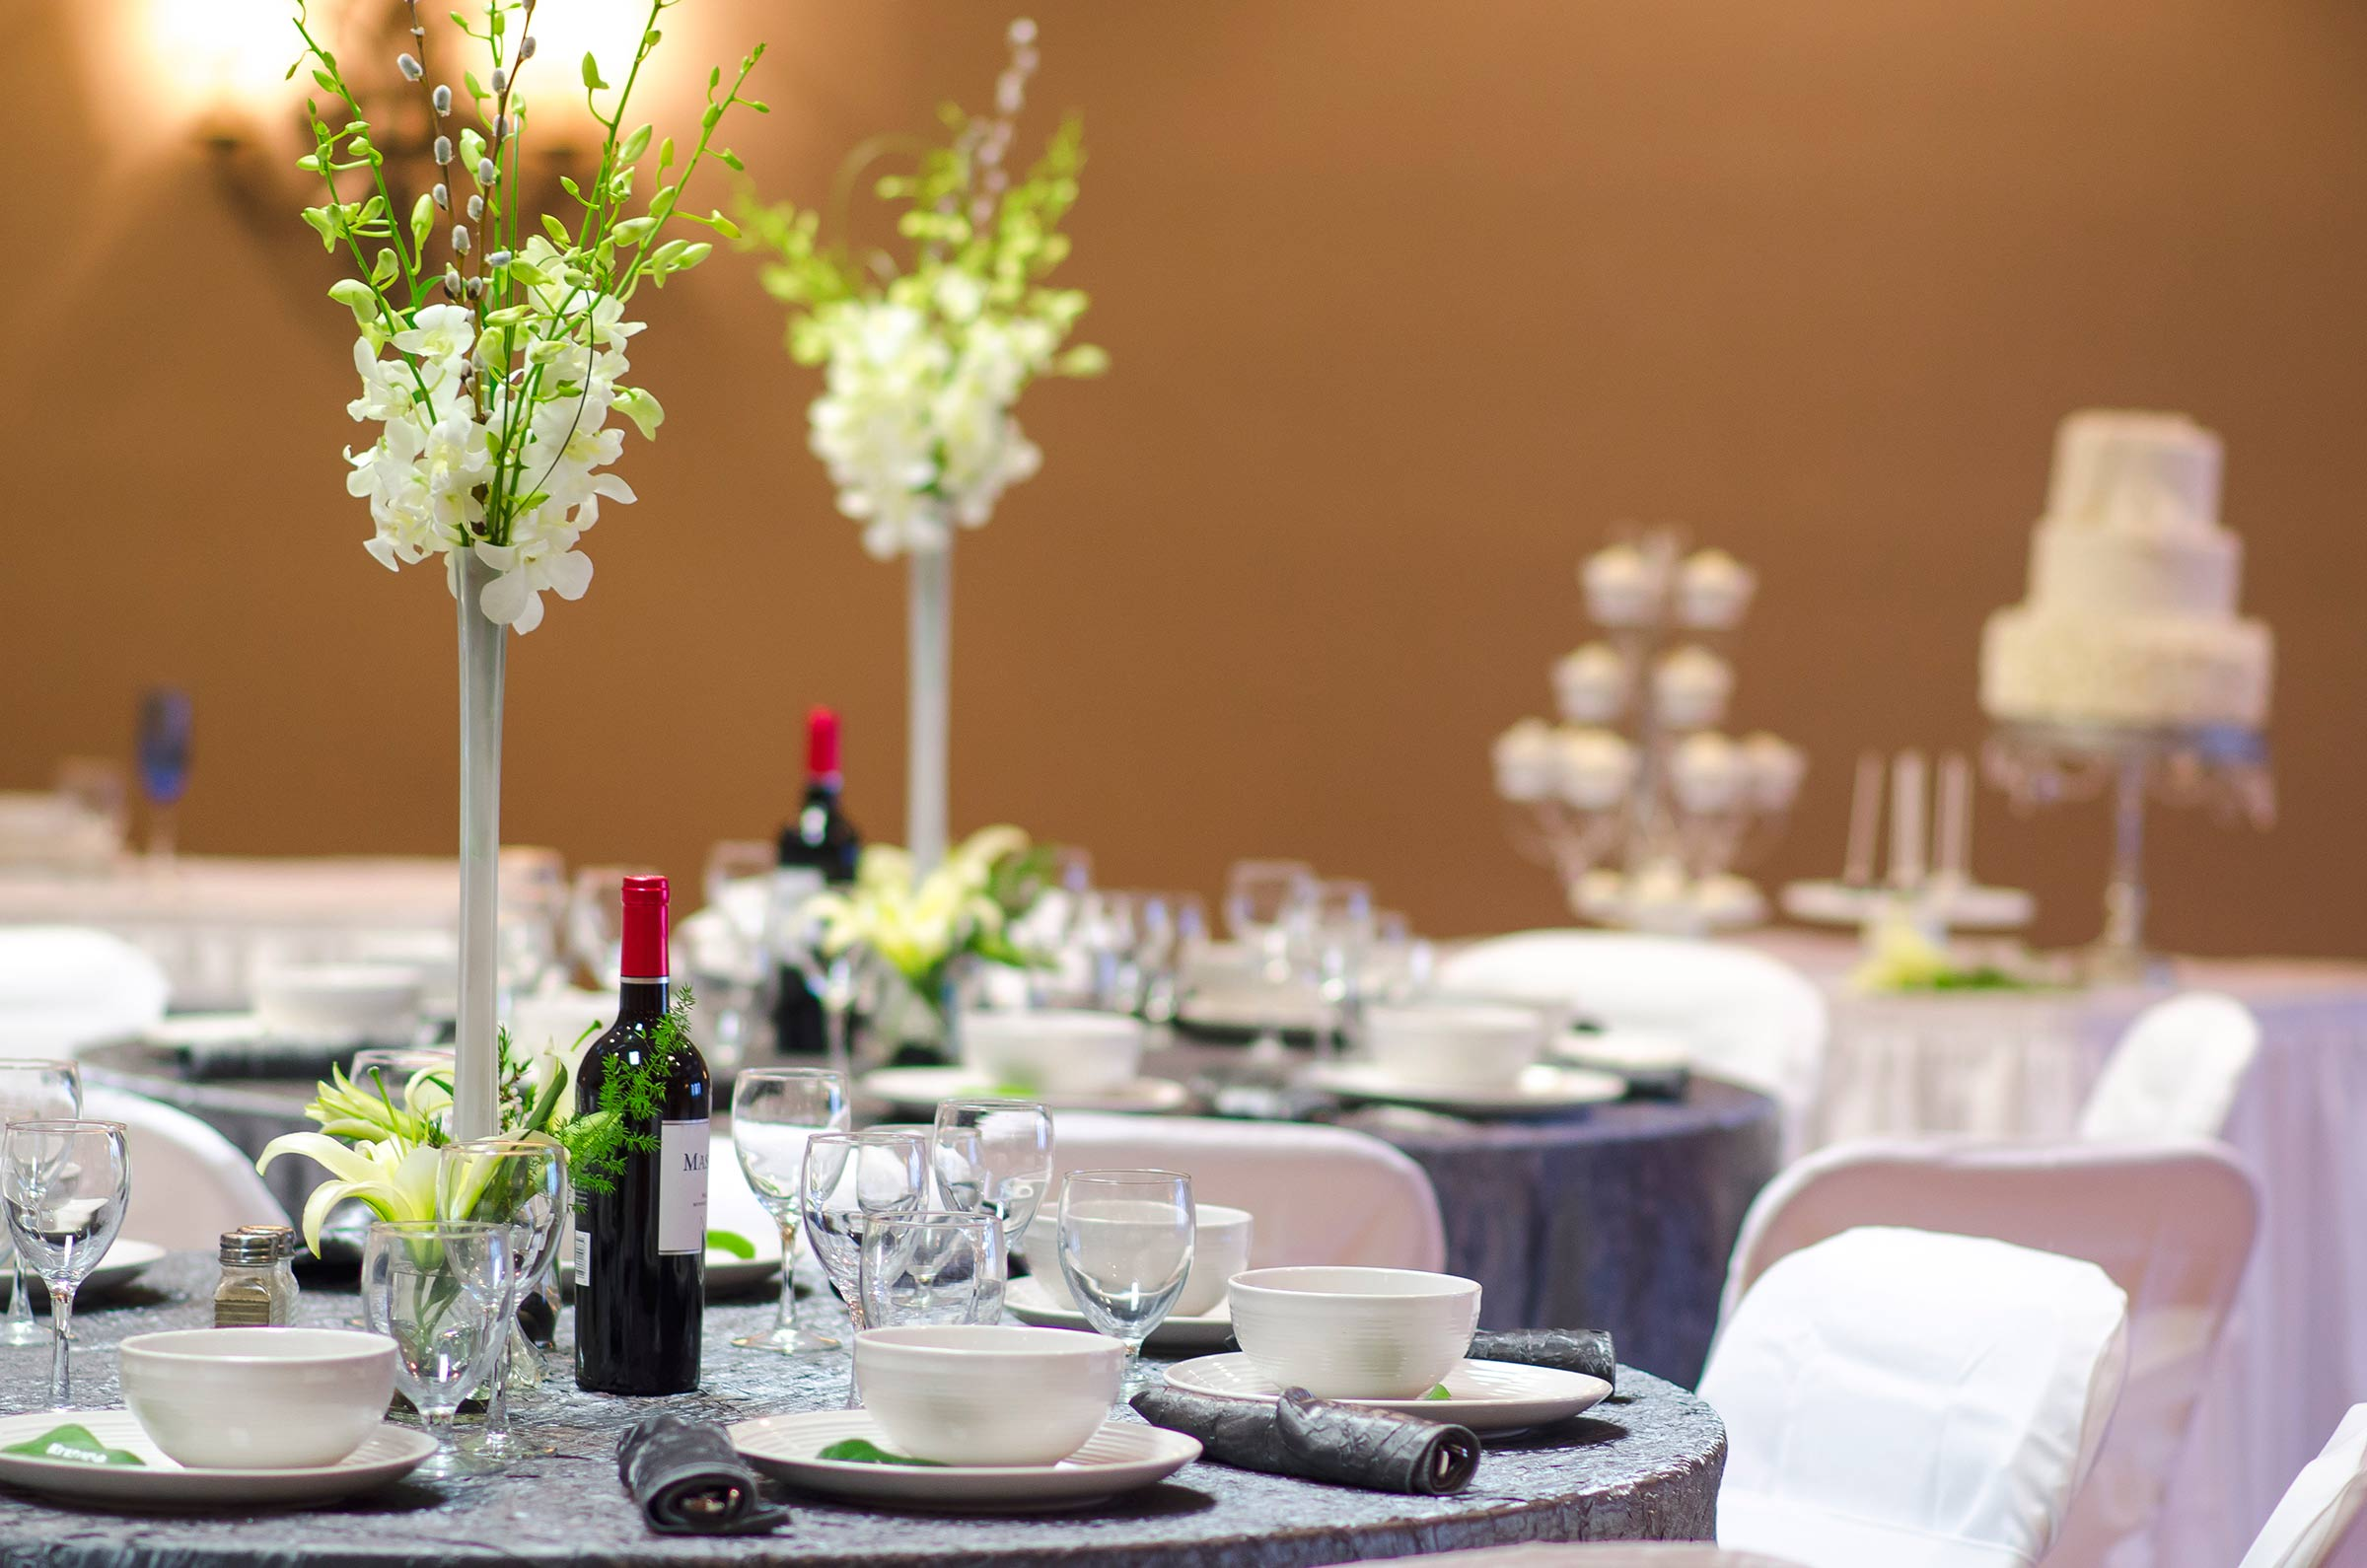 Wedding Table Setup with Centerpiece